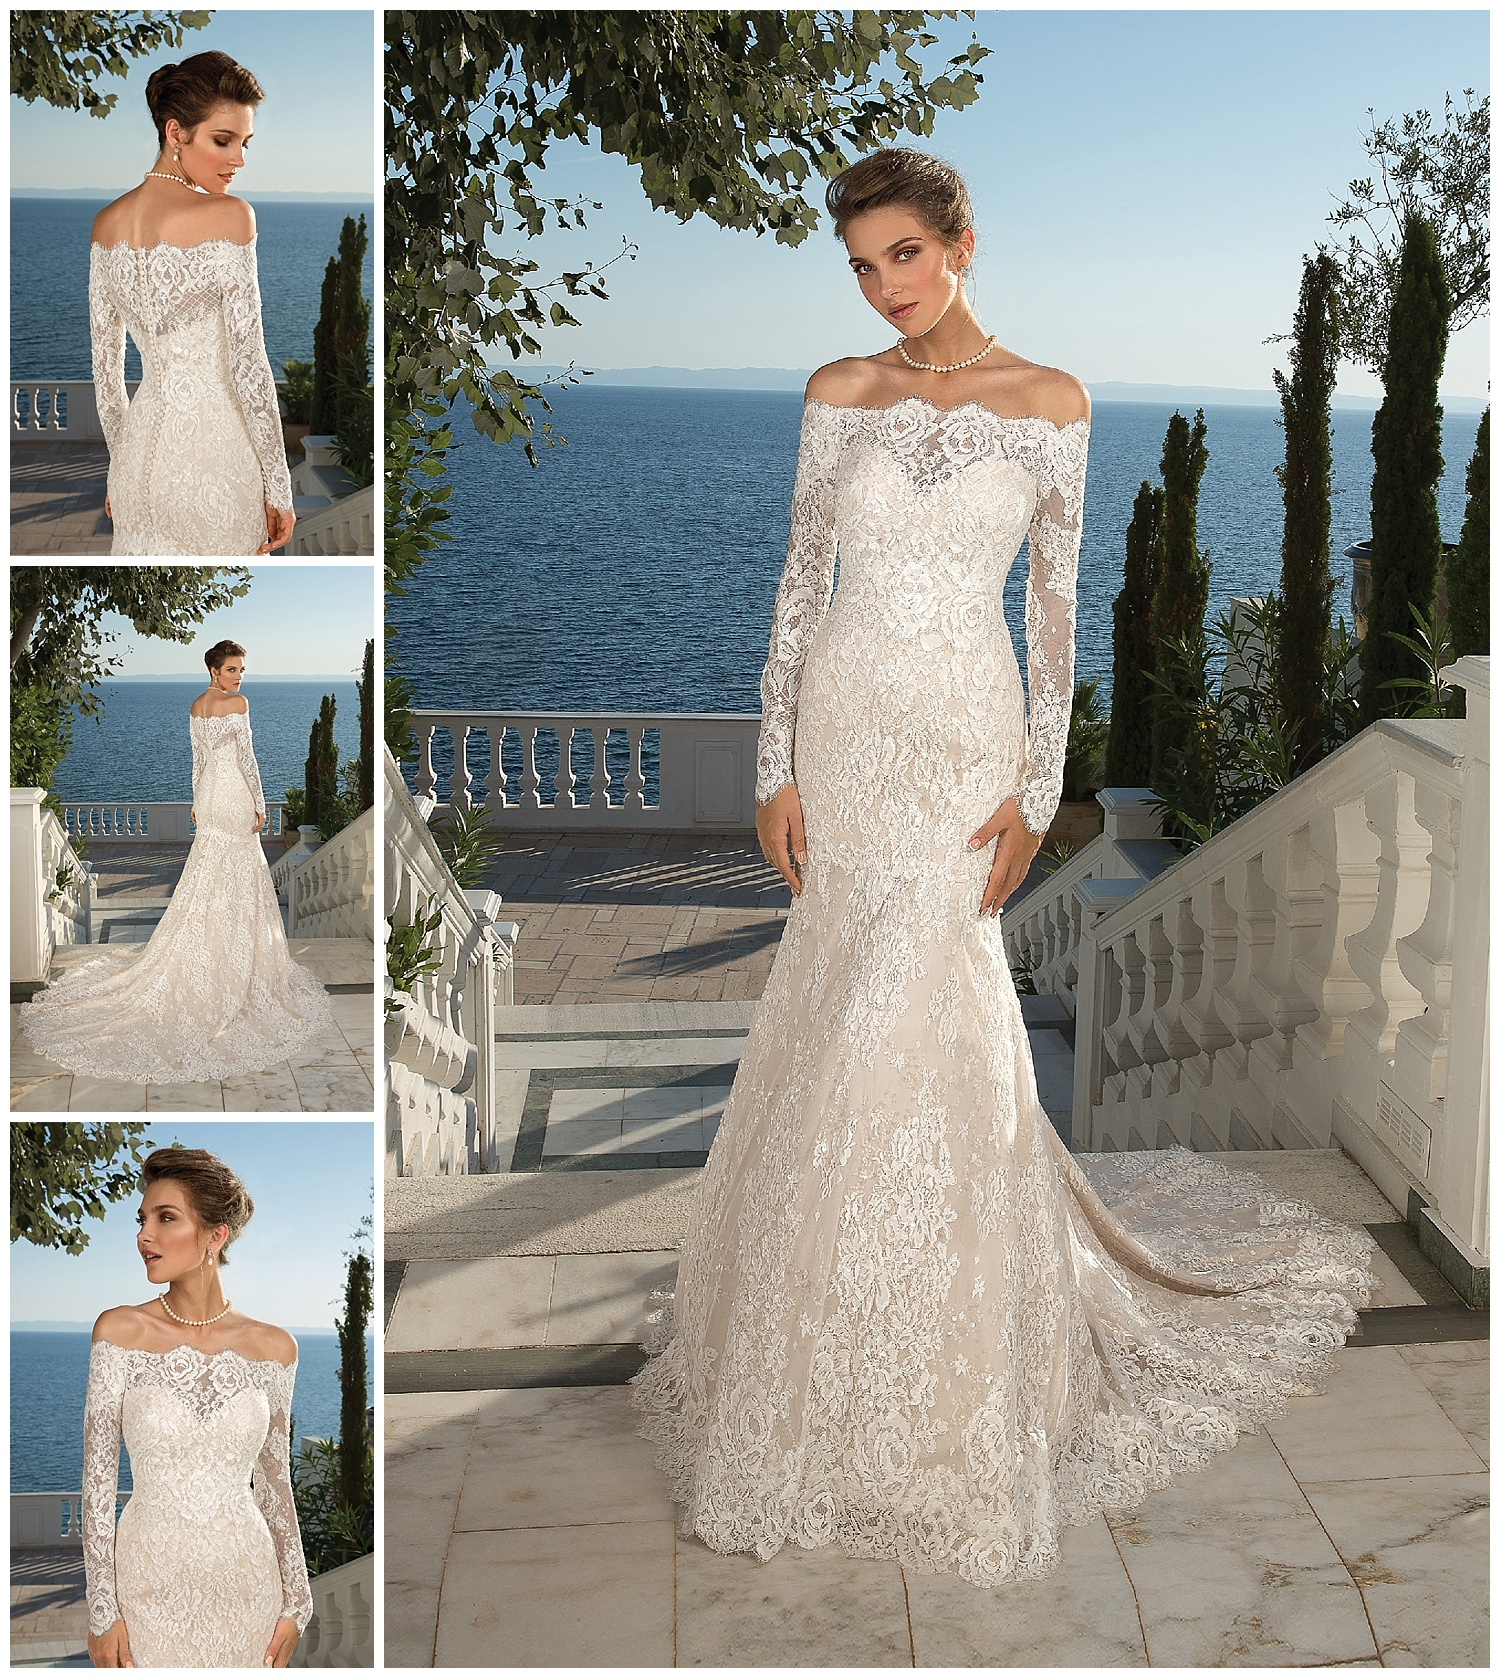 justin-alexander-88087-fit-and-flare-lace-wedding-dress-epiphany-boutique-carmel-california.jpg